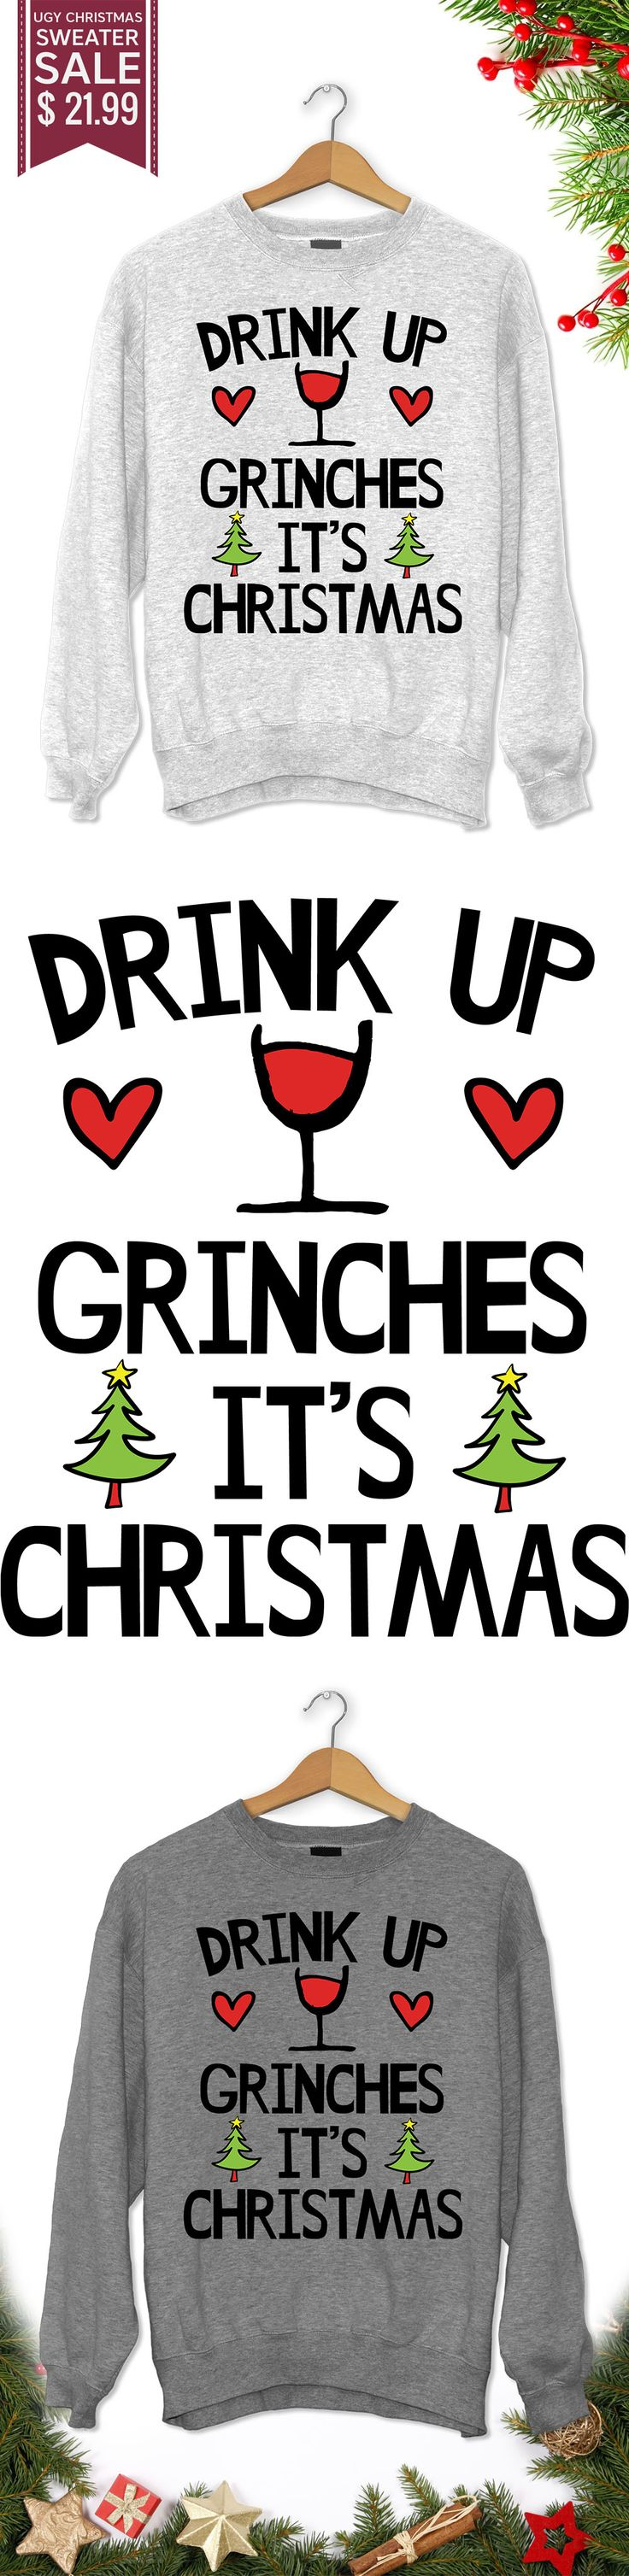 Drink Up Grinches It's Christmas - Get this limited edition ugly Christmas Sweater just in time for the holidays! Buy 2 or more, save on shipping!